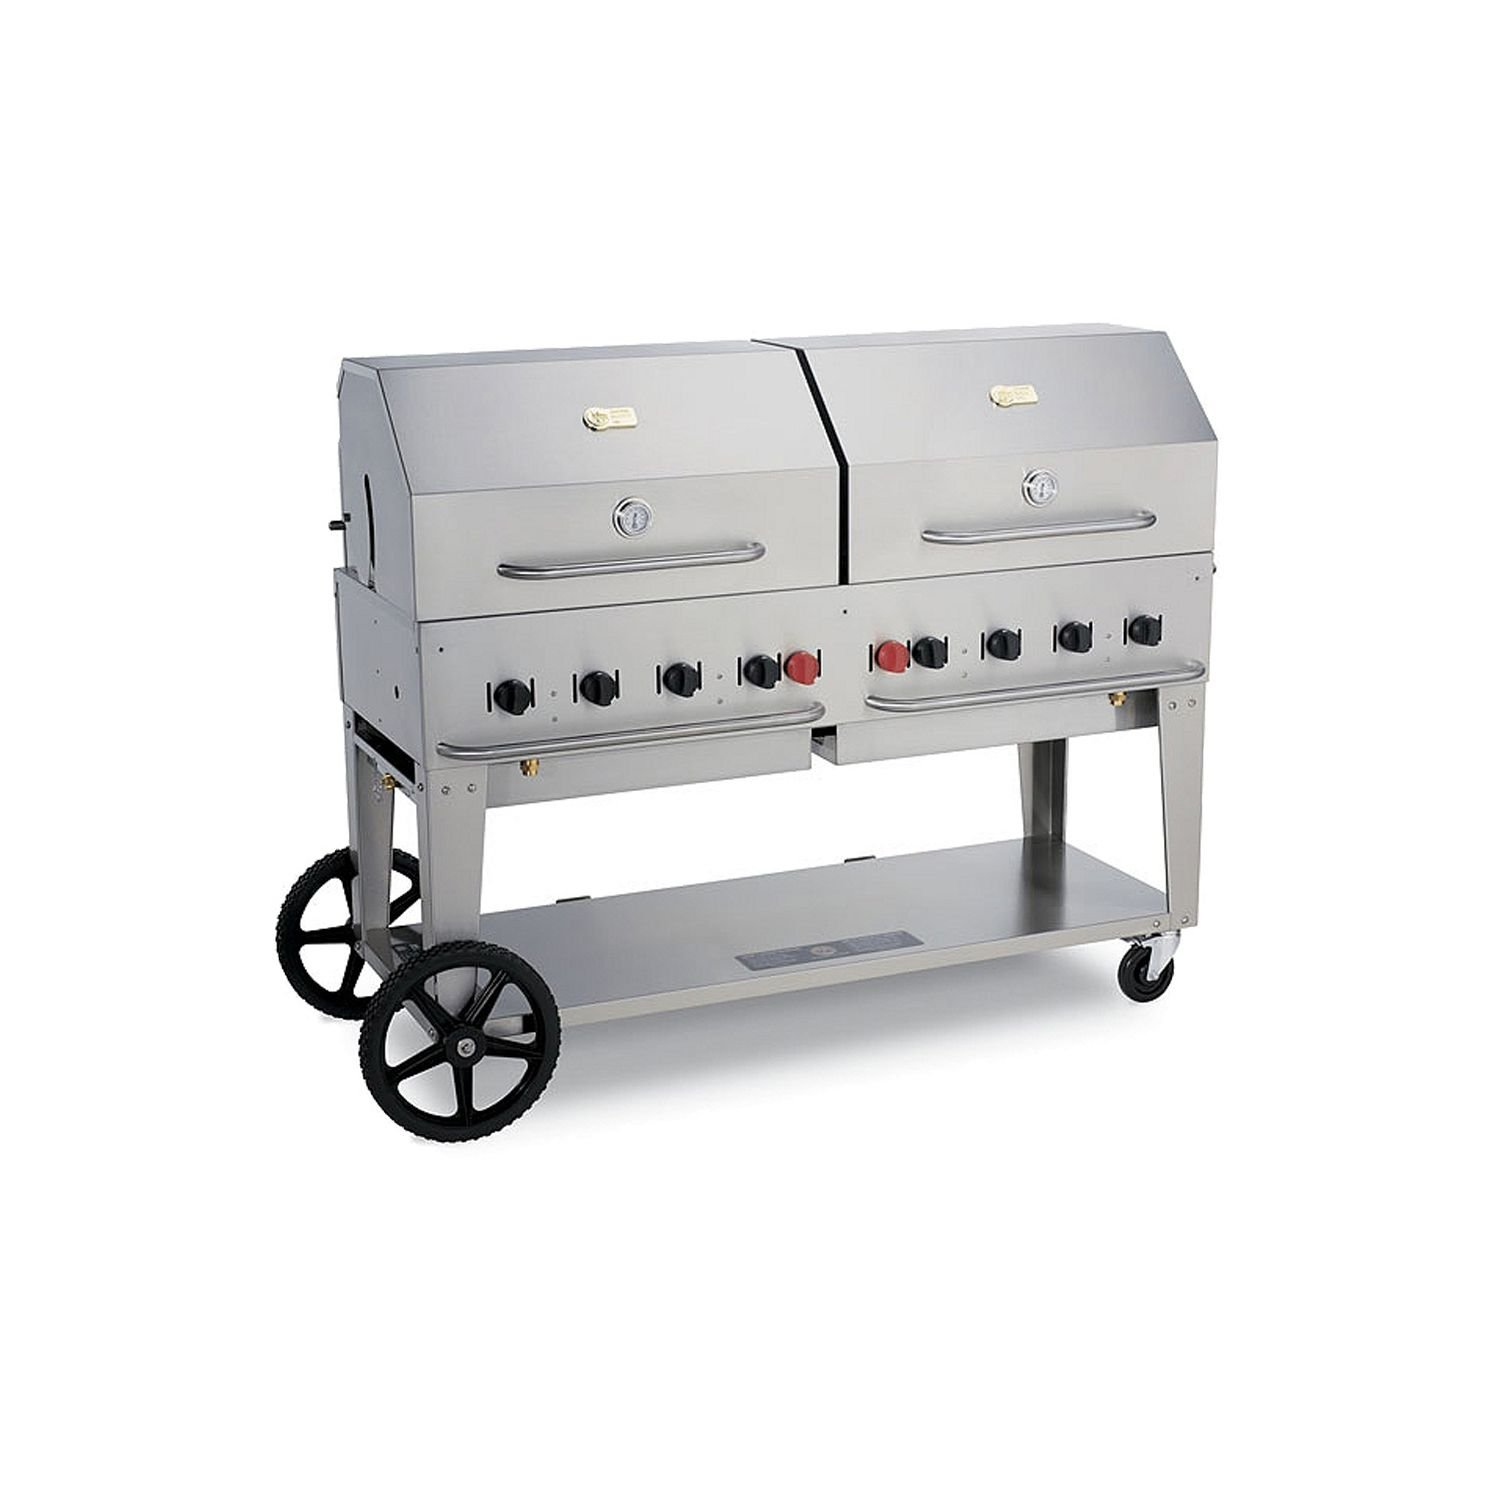 "Elite Package 60"" Stainless Steel Natural Gas Grill"